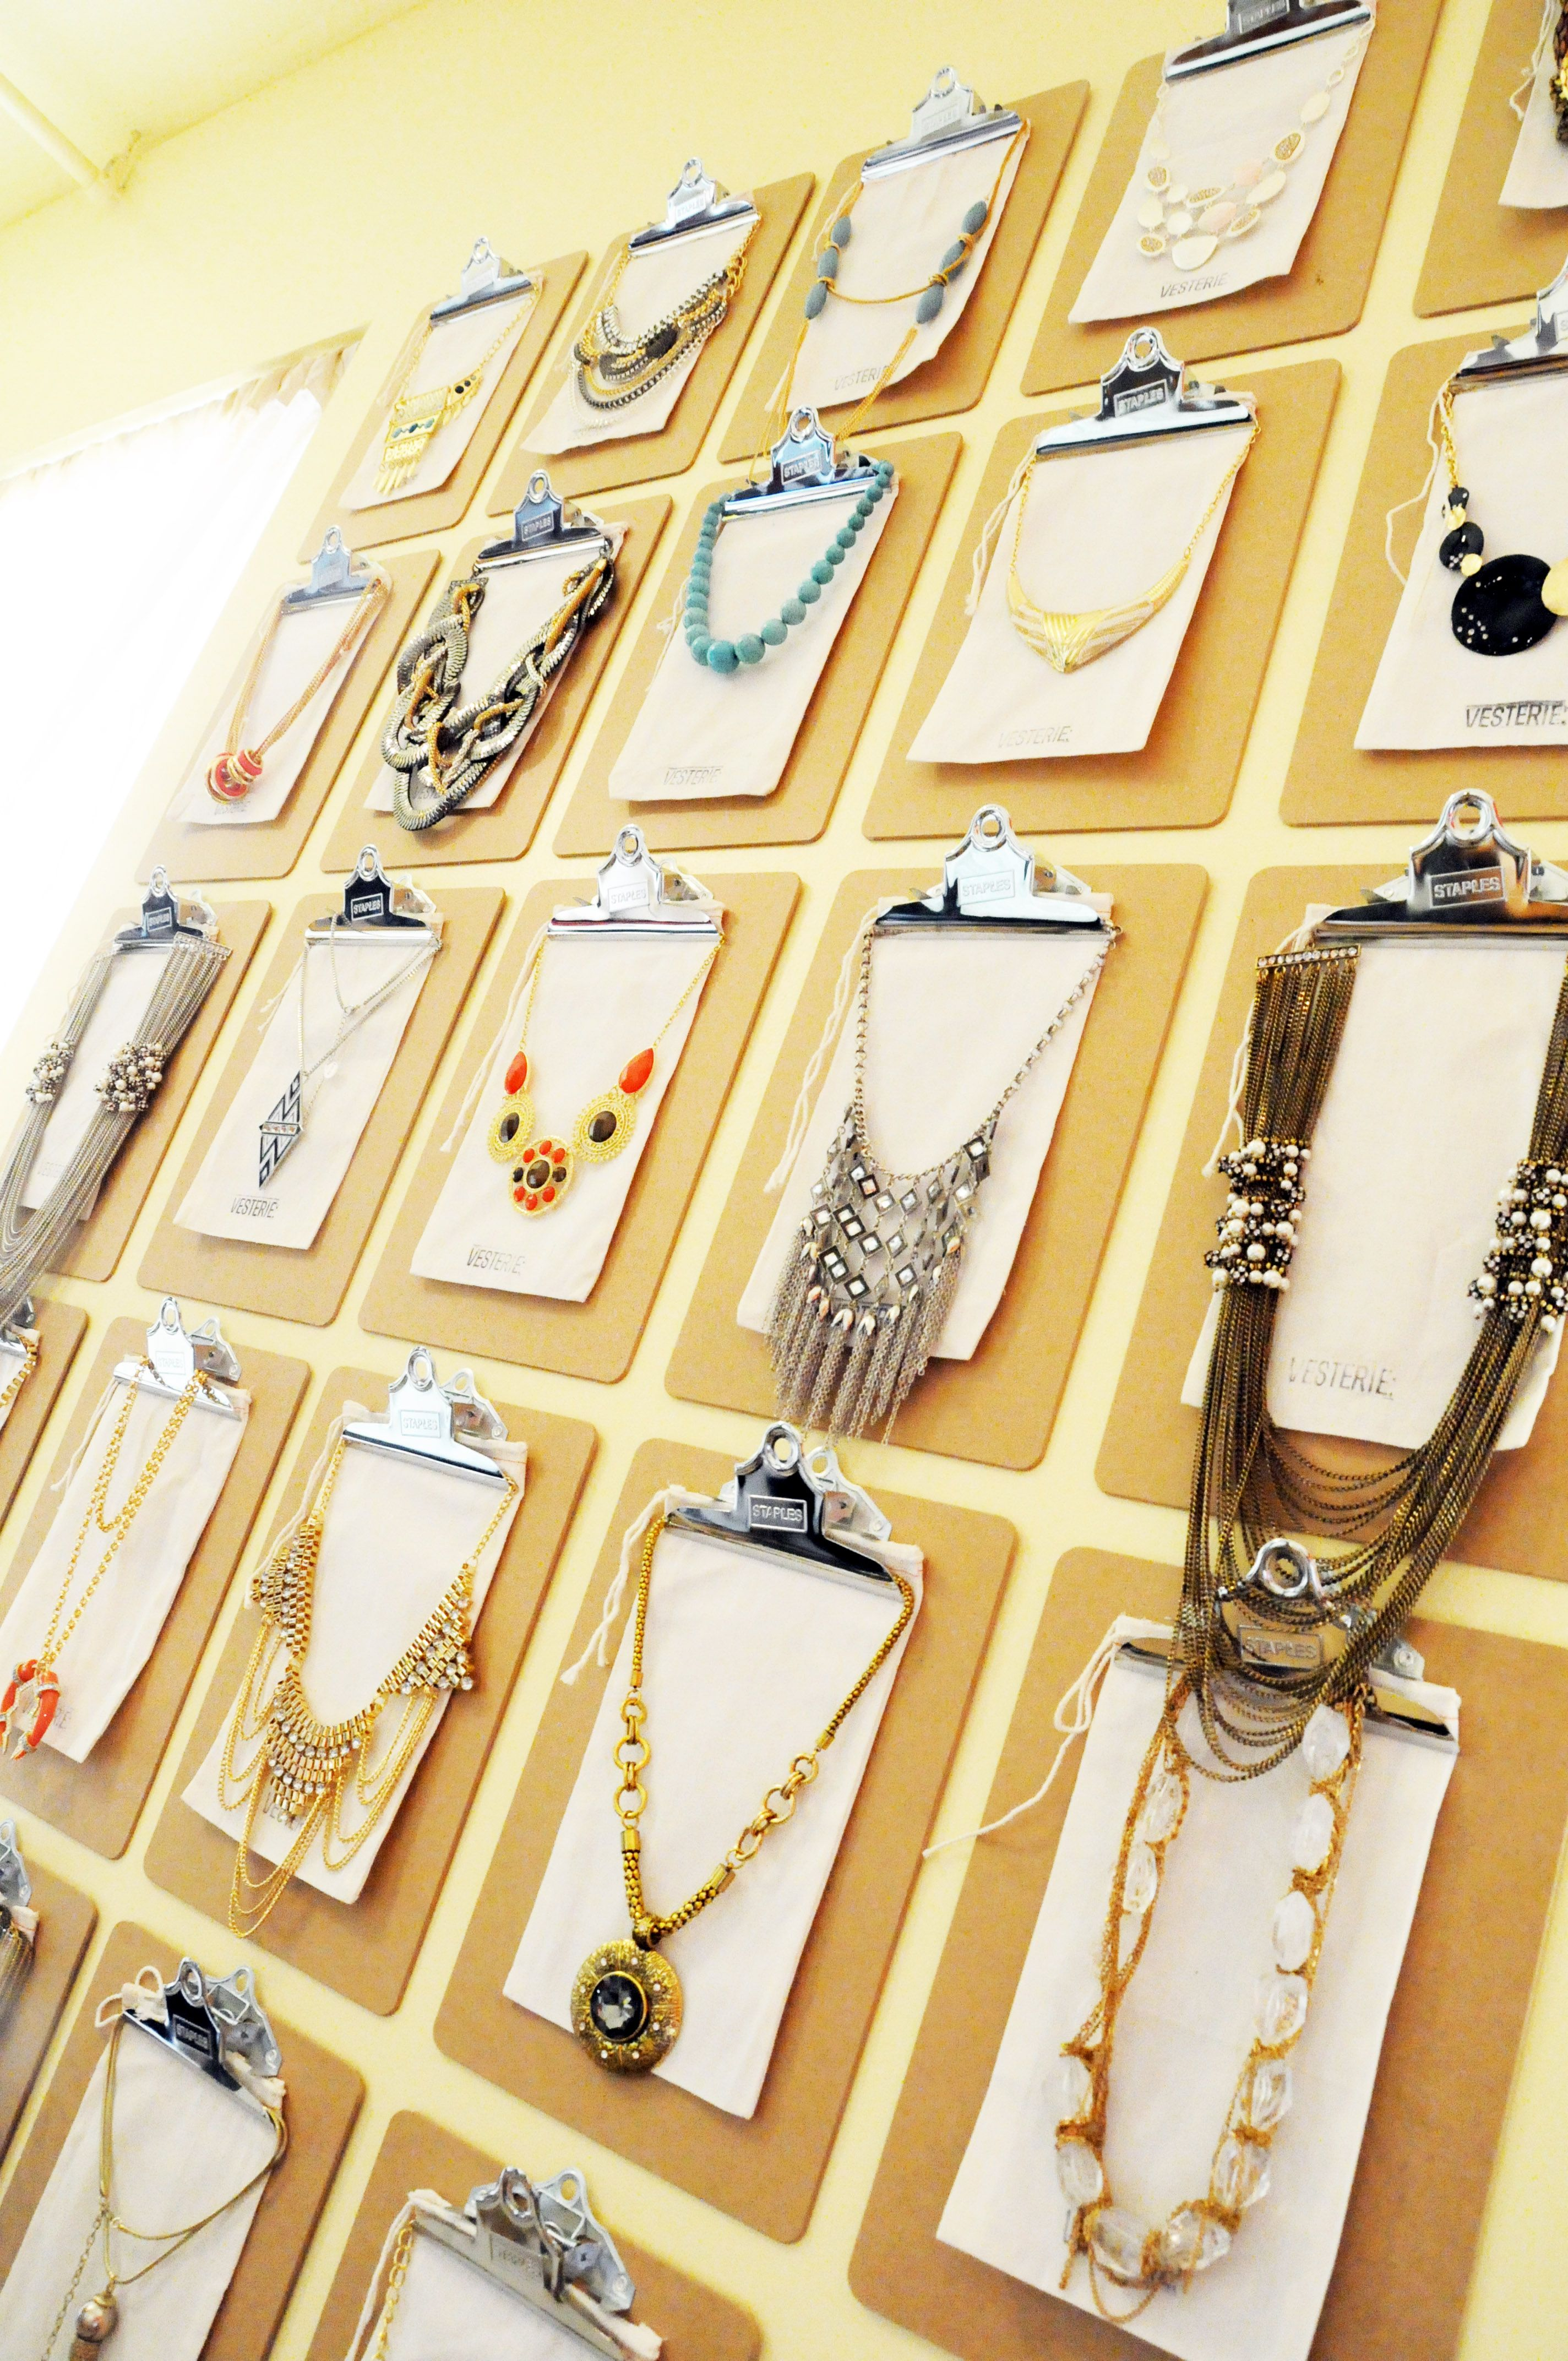 Presenting: the Vesterie Jewelry Display wall, my favorite DIY project ever! Clipboards and Velcro is all you need.